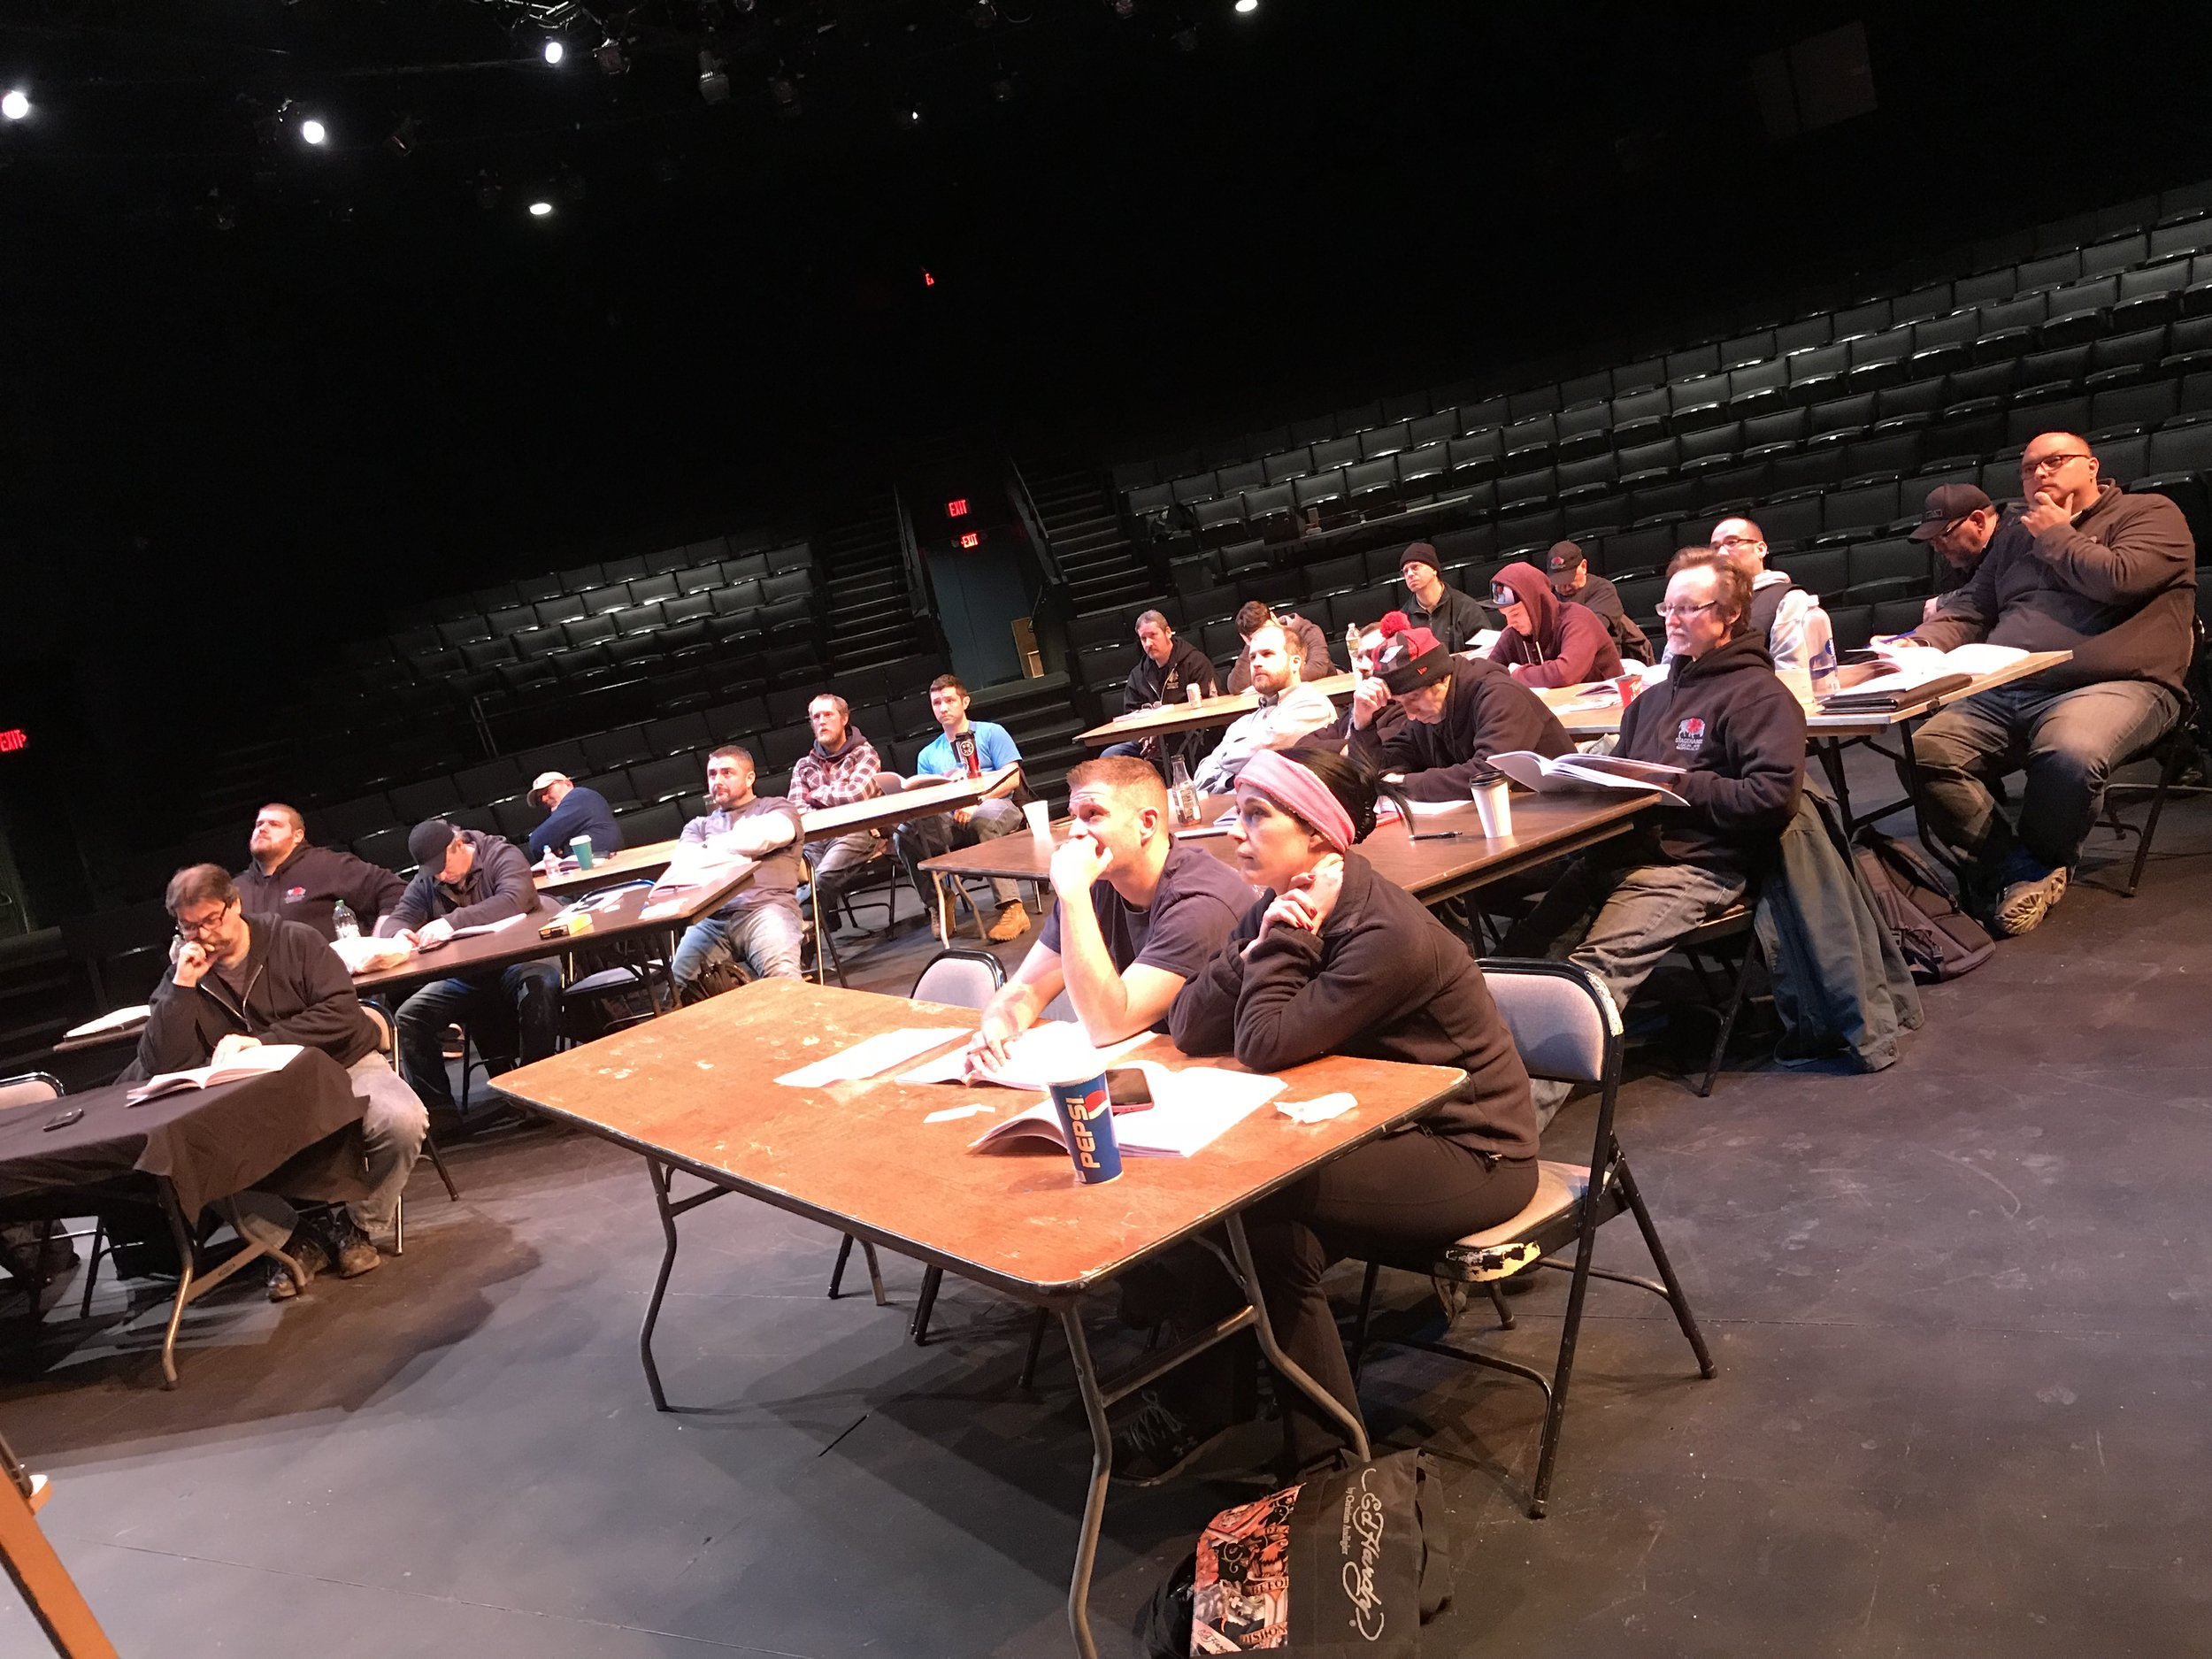 IATSE TTF OSHA 10/General Entertainment Safety in Buffalo, NY | April 9-10, 2018